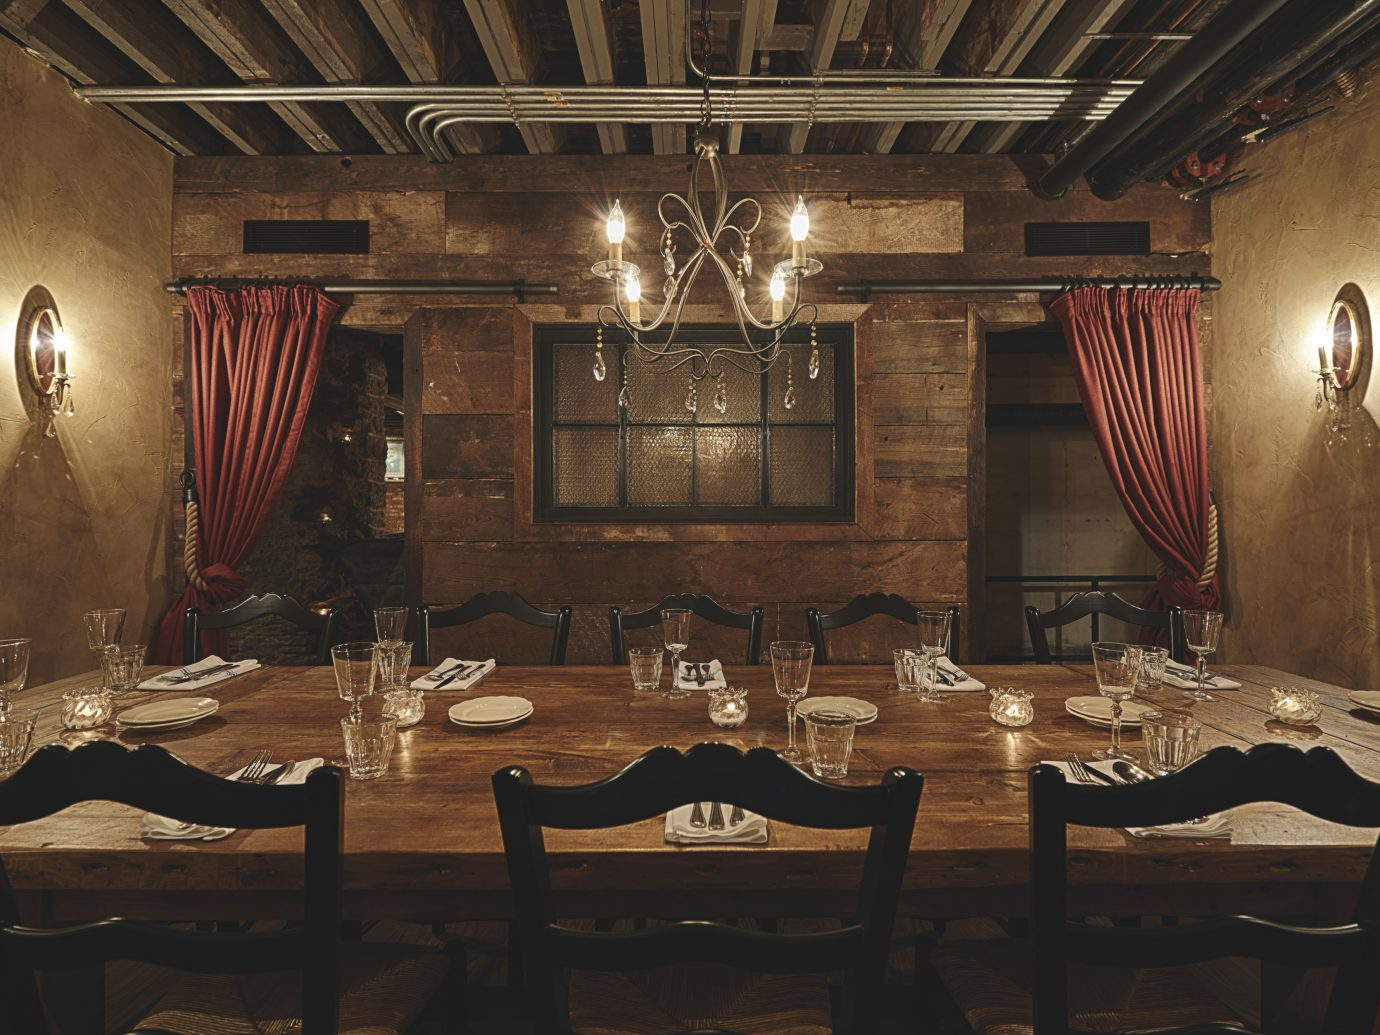 Interior shot of the dining room at Sotto